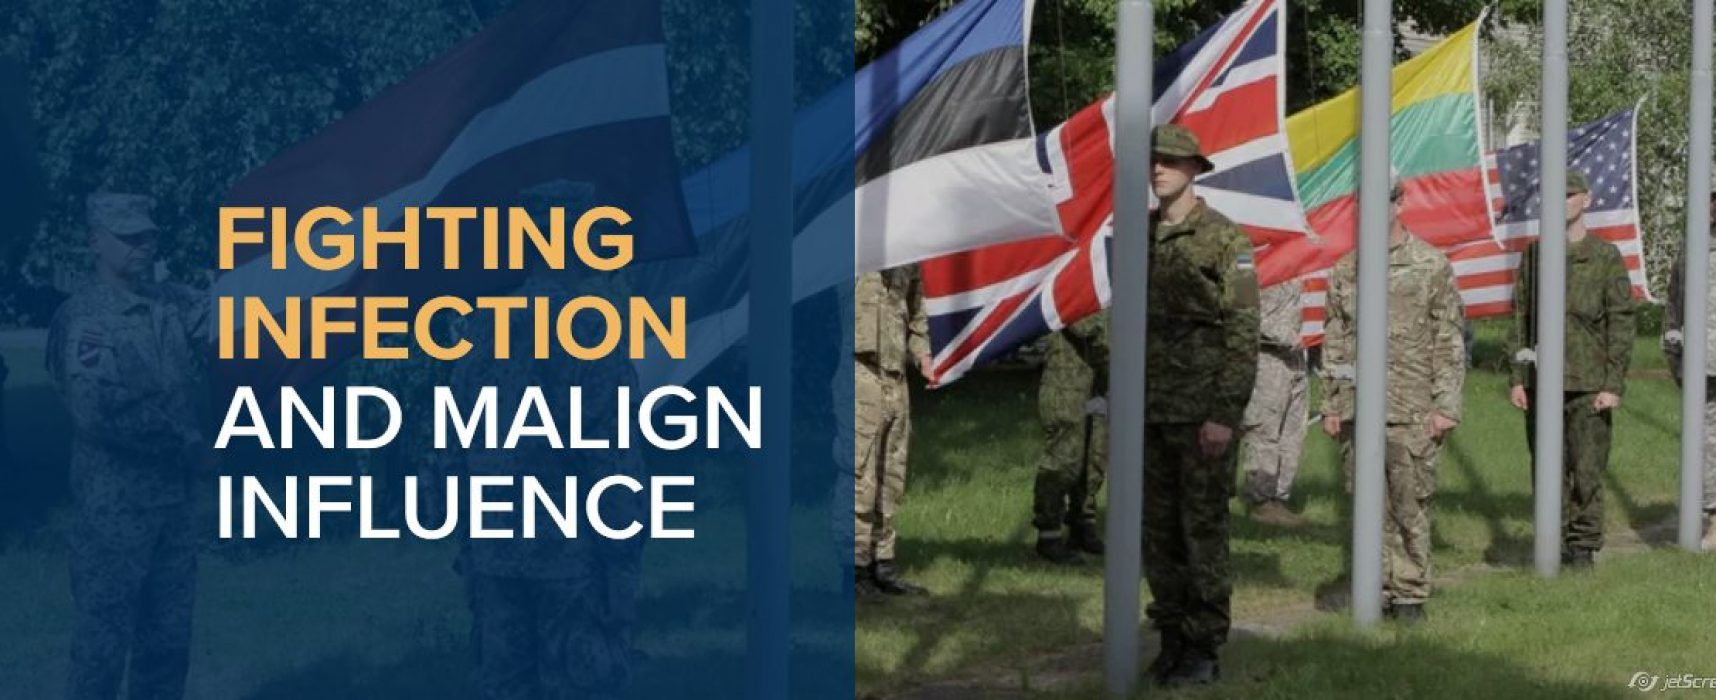 Fighting infection and malign influence: The Baltic response to the COVID-19 crisis